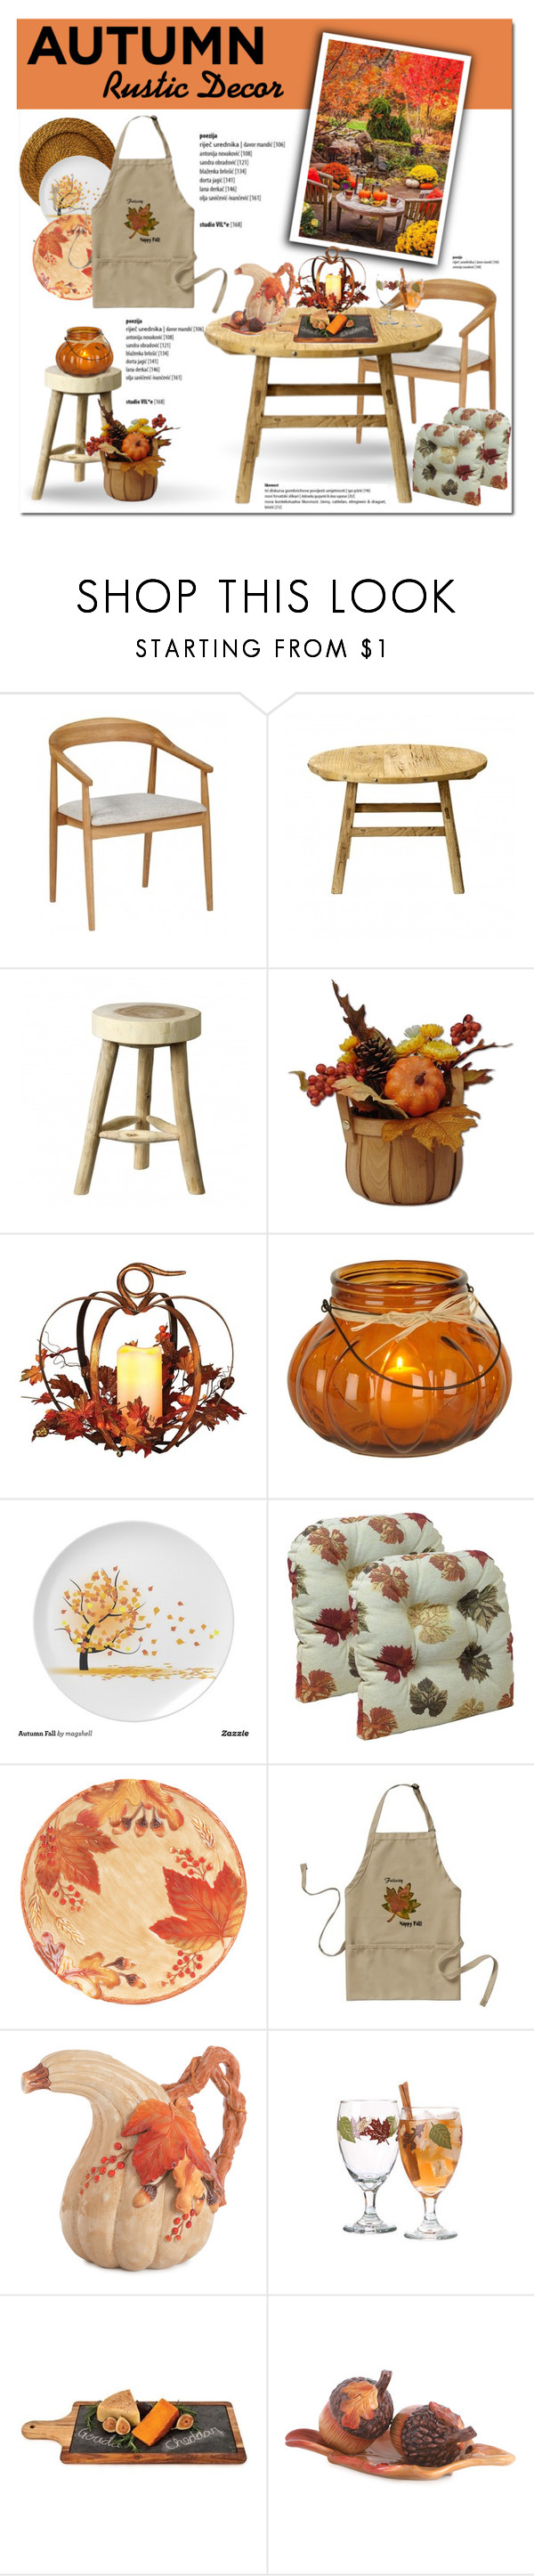 """""""Rustic Fall Decor"""" by cruzeirodotejo ❤ liked on Polyvore featuring interior, interiors, interior design, home, home decor, interior decorating, Bloomingville, Harvest, Fitz and Floyd and Twine"""